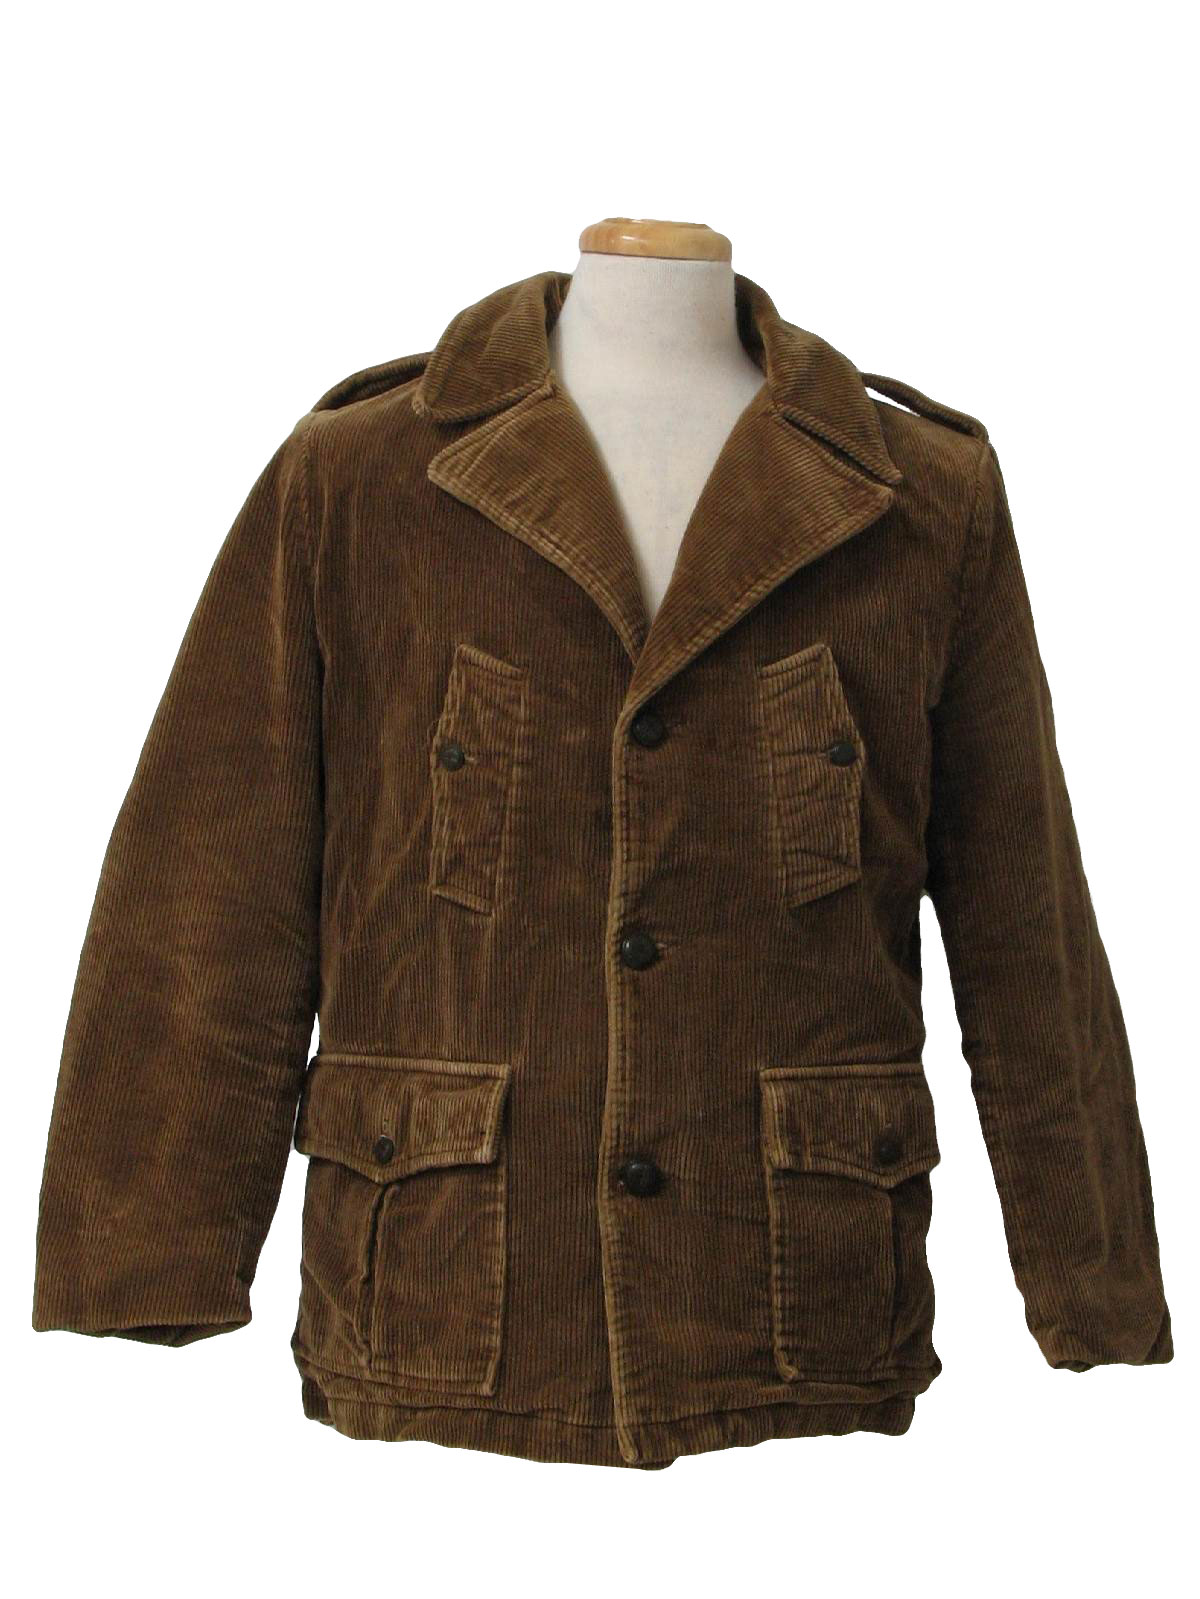 Corduroy car coat – Novelties of modern fashion photo blog